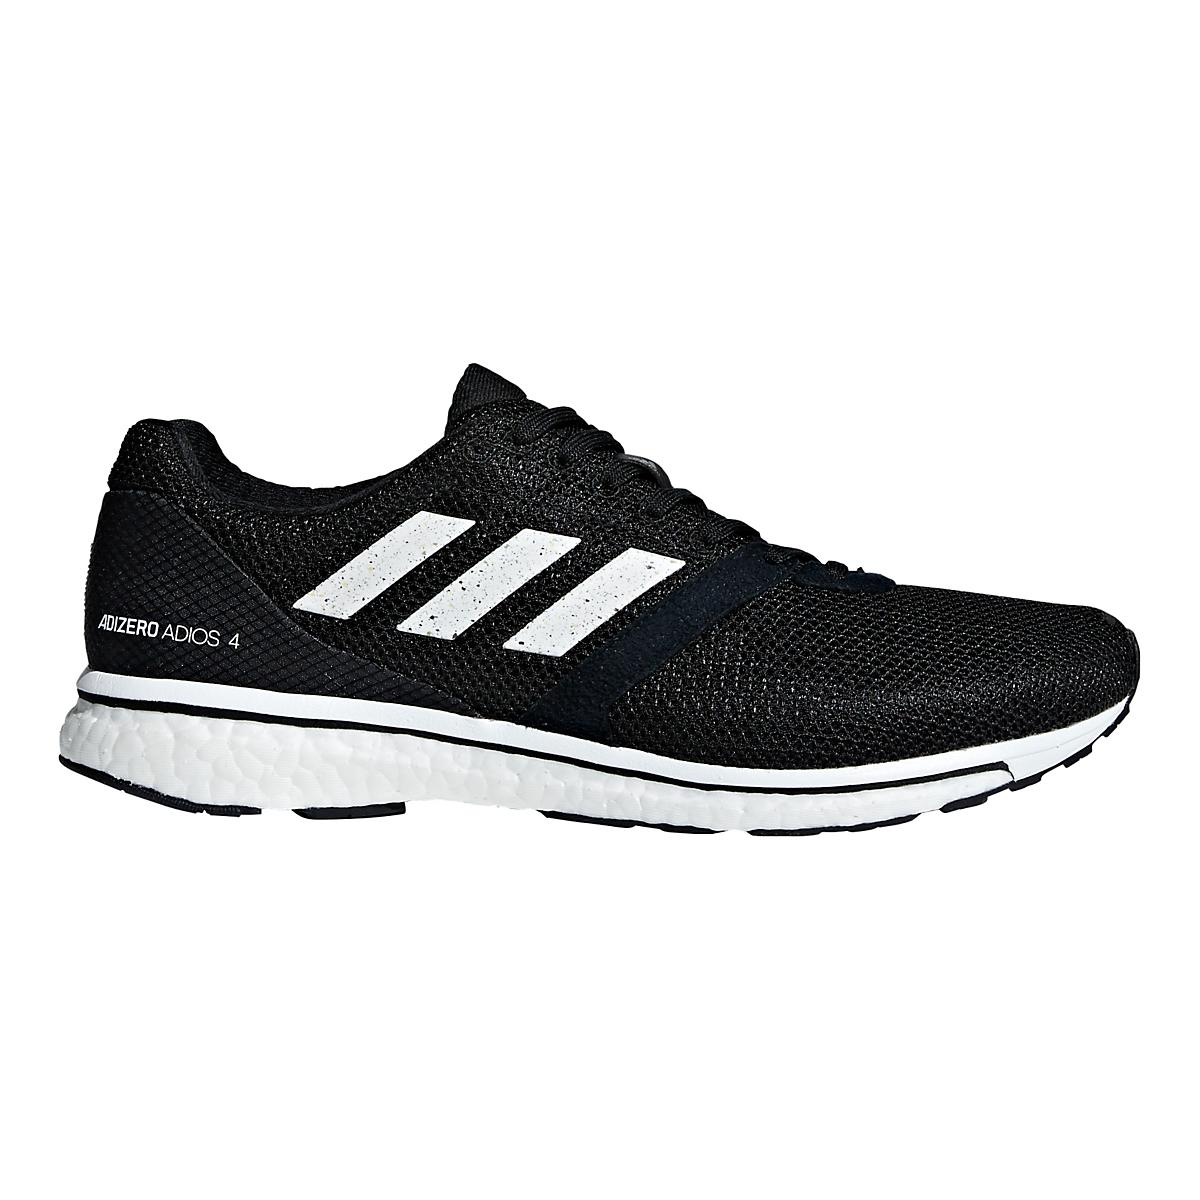 0fe41fd44147 Mens adidas Adizero Adios 4 Running Shoe at Road Runner Sports